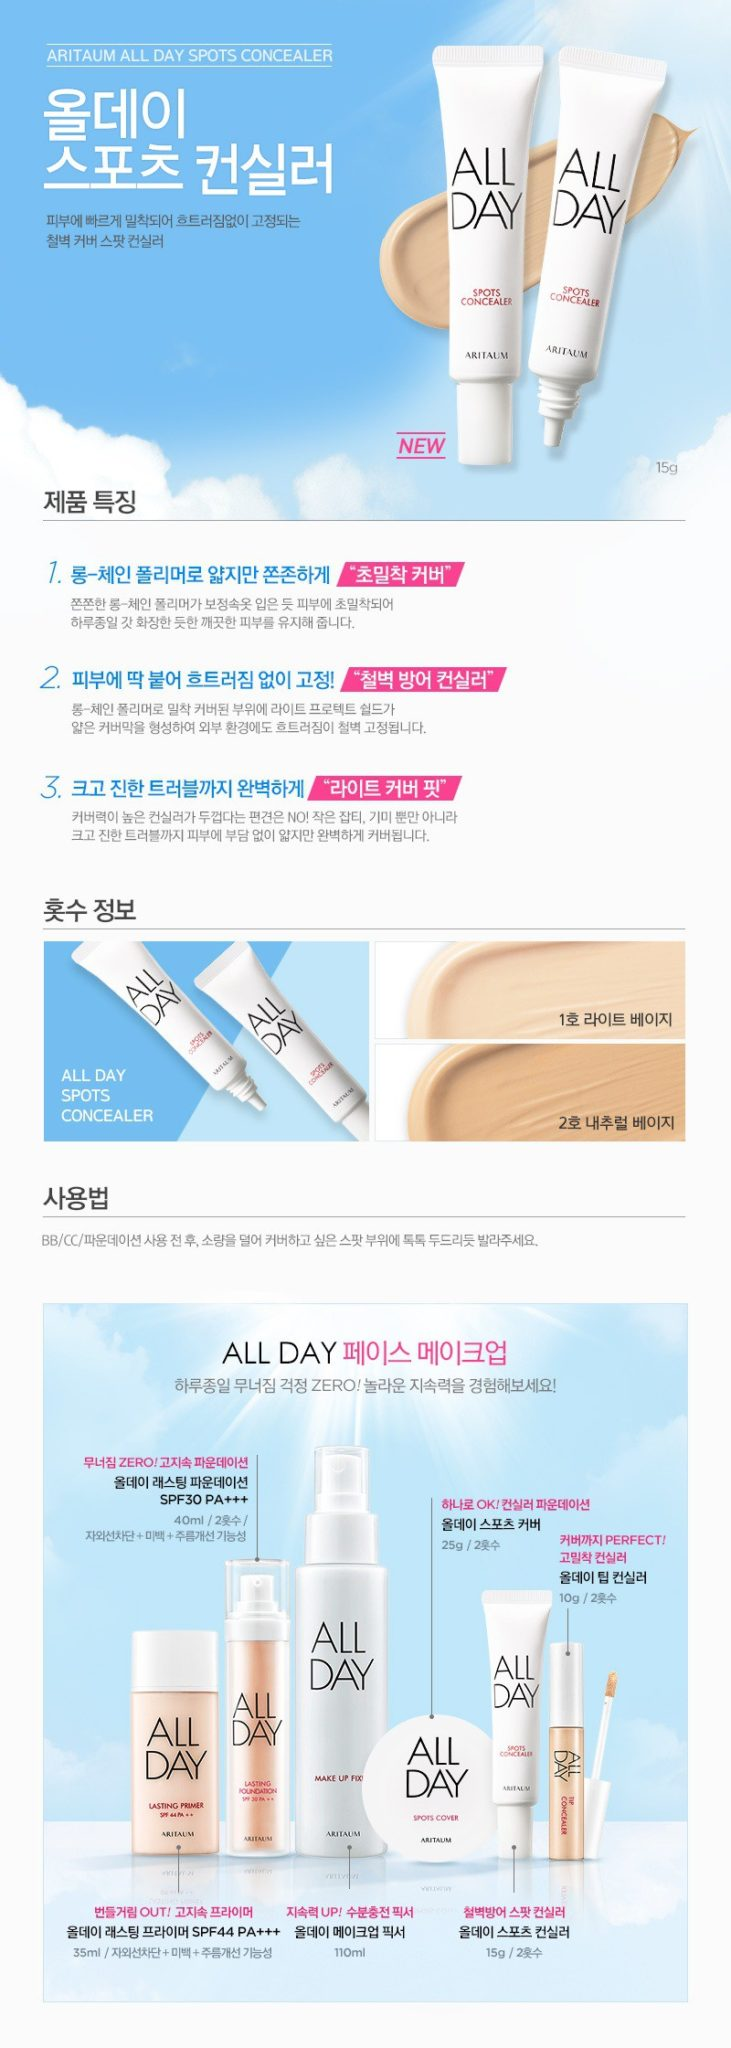 Aritaum Allday Spots Concealer 15g  korean cosmetic makeup product online shop malaysia  brunei philippines1